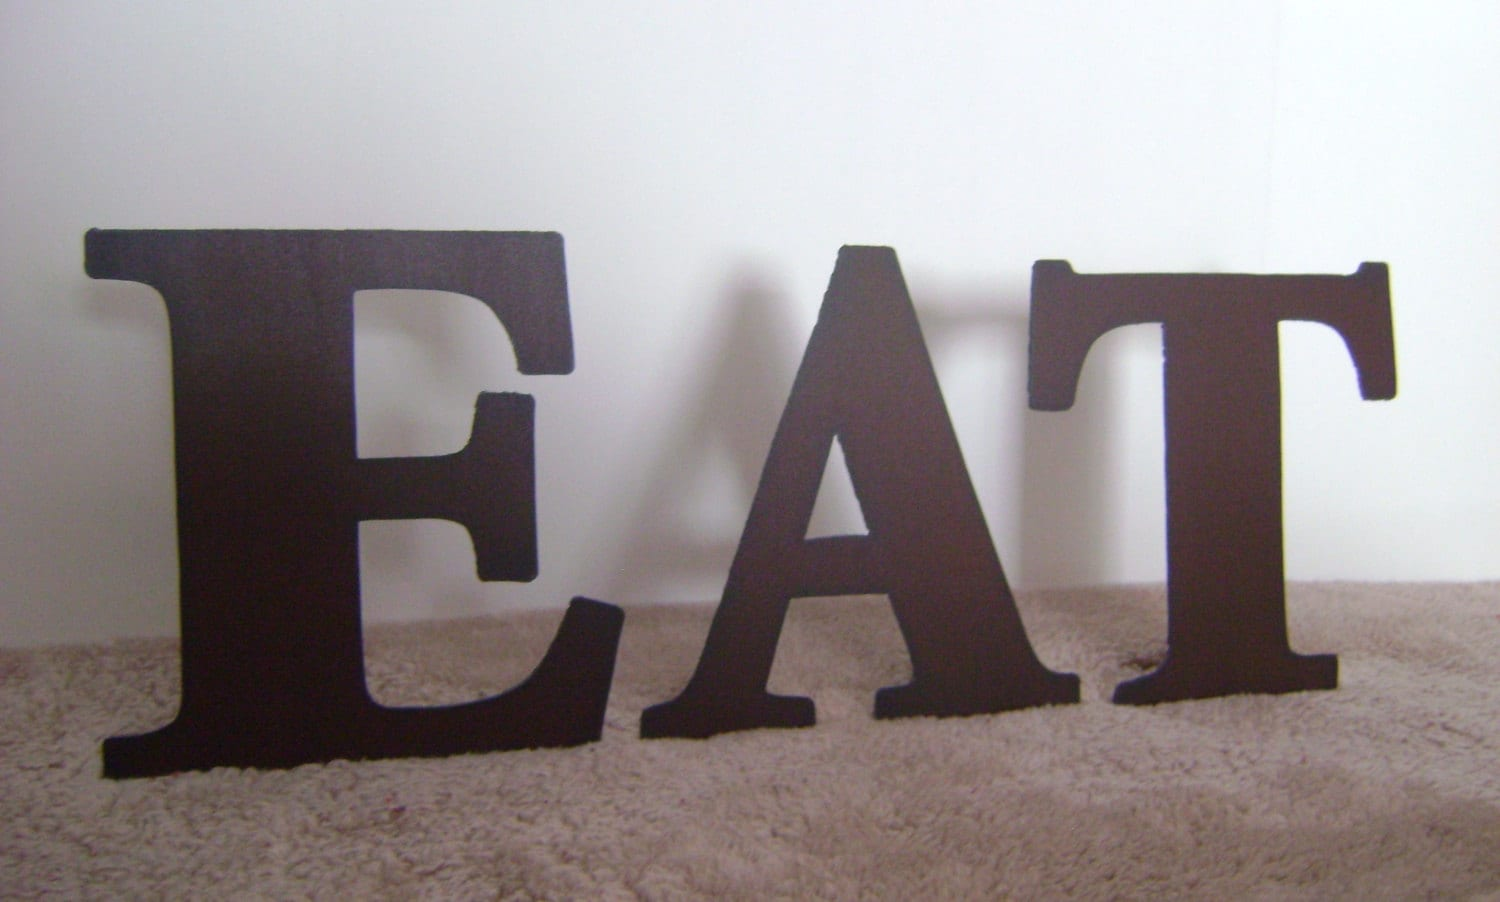 10 Inch Metal Letters Eat Word Art Wall Art Metal Letters 10 Inch Or 14 Inch